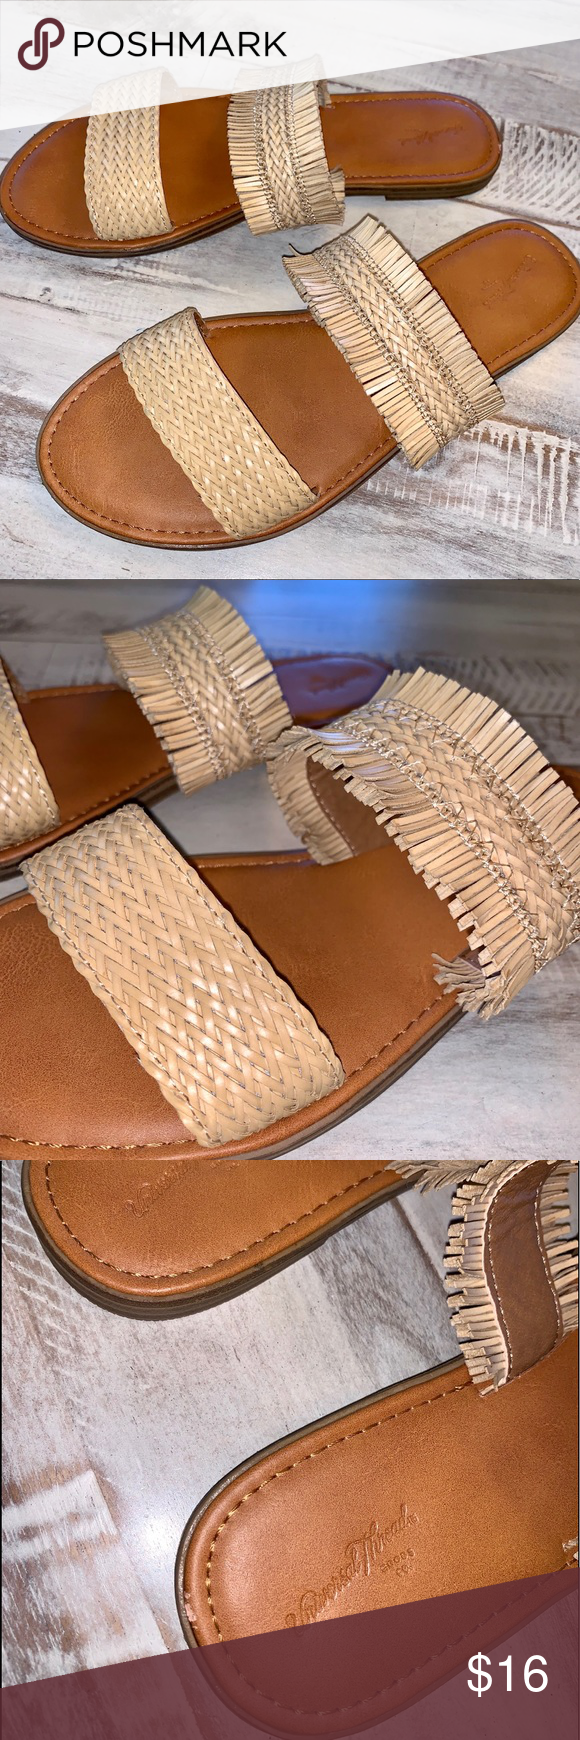 Sandals Sandals, Things to sell, Flat sandals